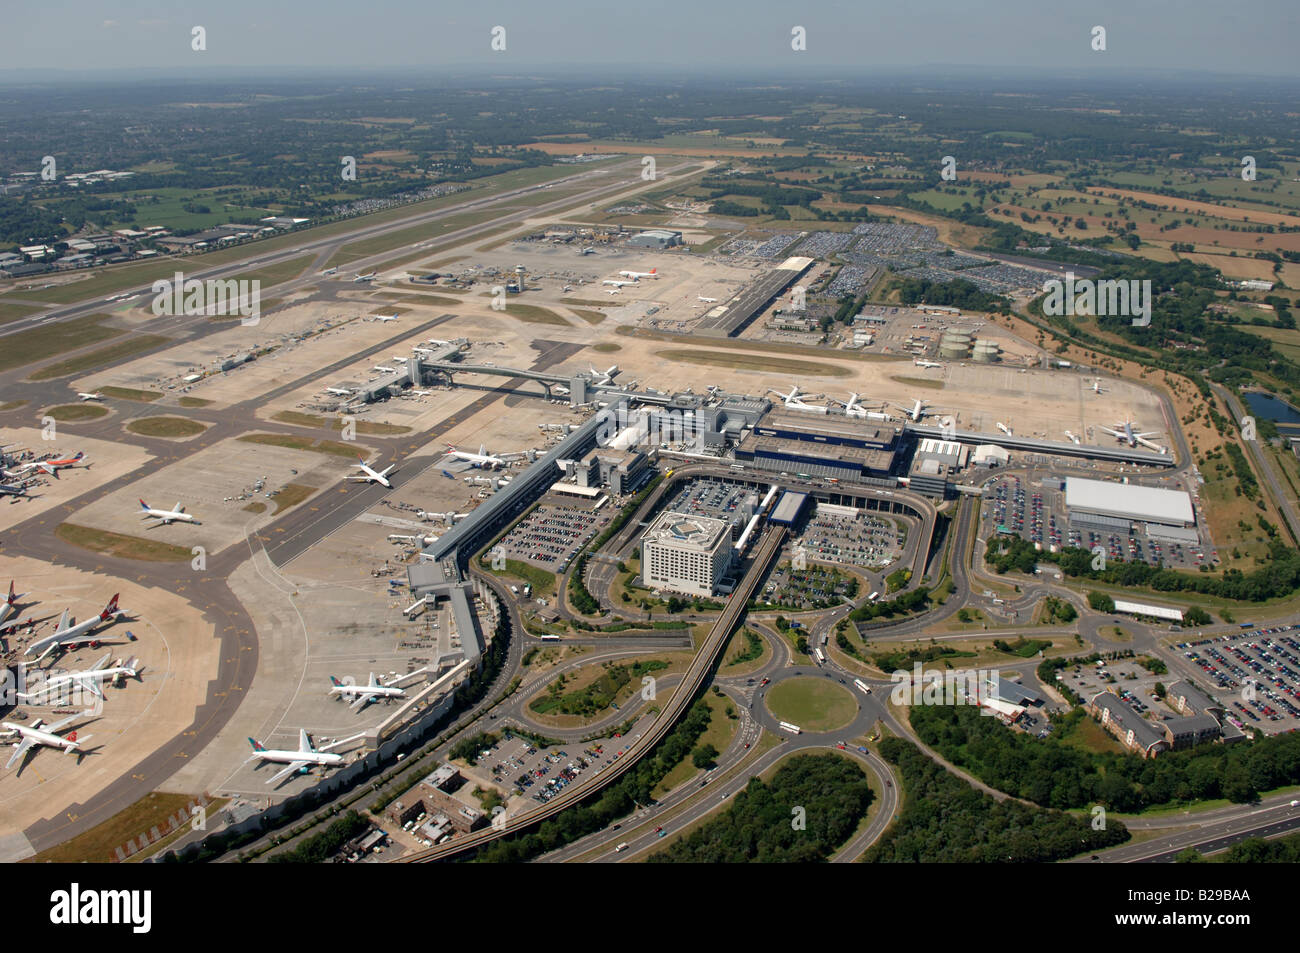 Gatwick Airport Date 12 03 2008 Ref ZB648 111149 0030 COMPULSORY CREDIT World Pictures Photoshot Stock Photo